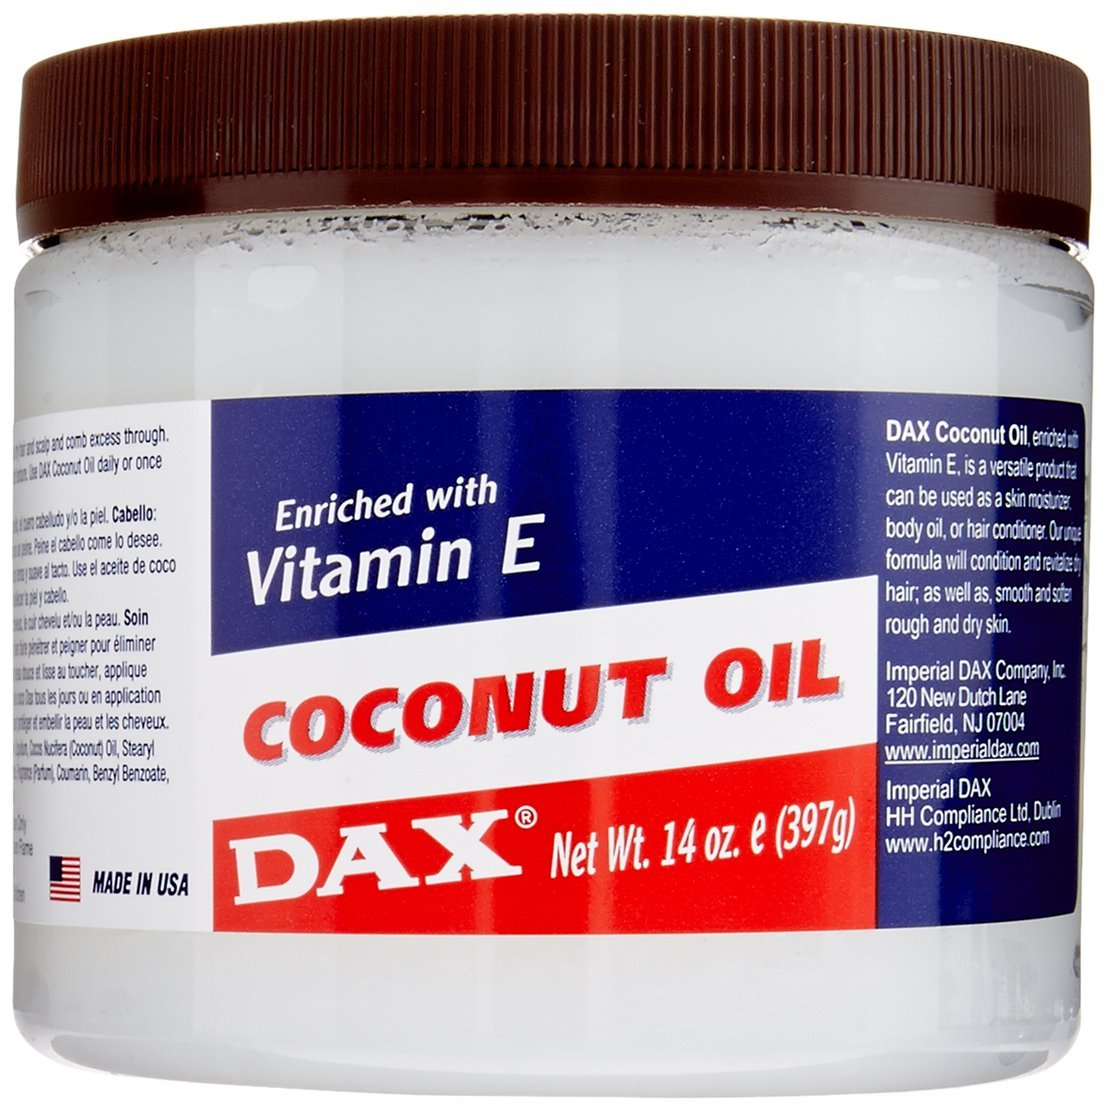 Vitamin e and coconut oil for hair